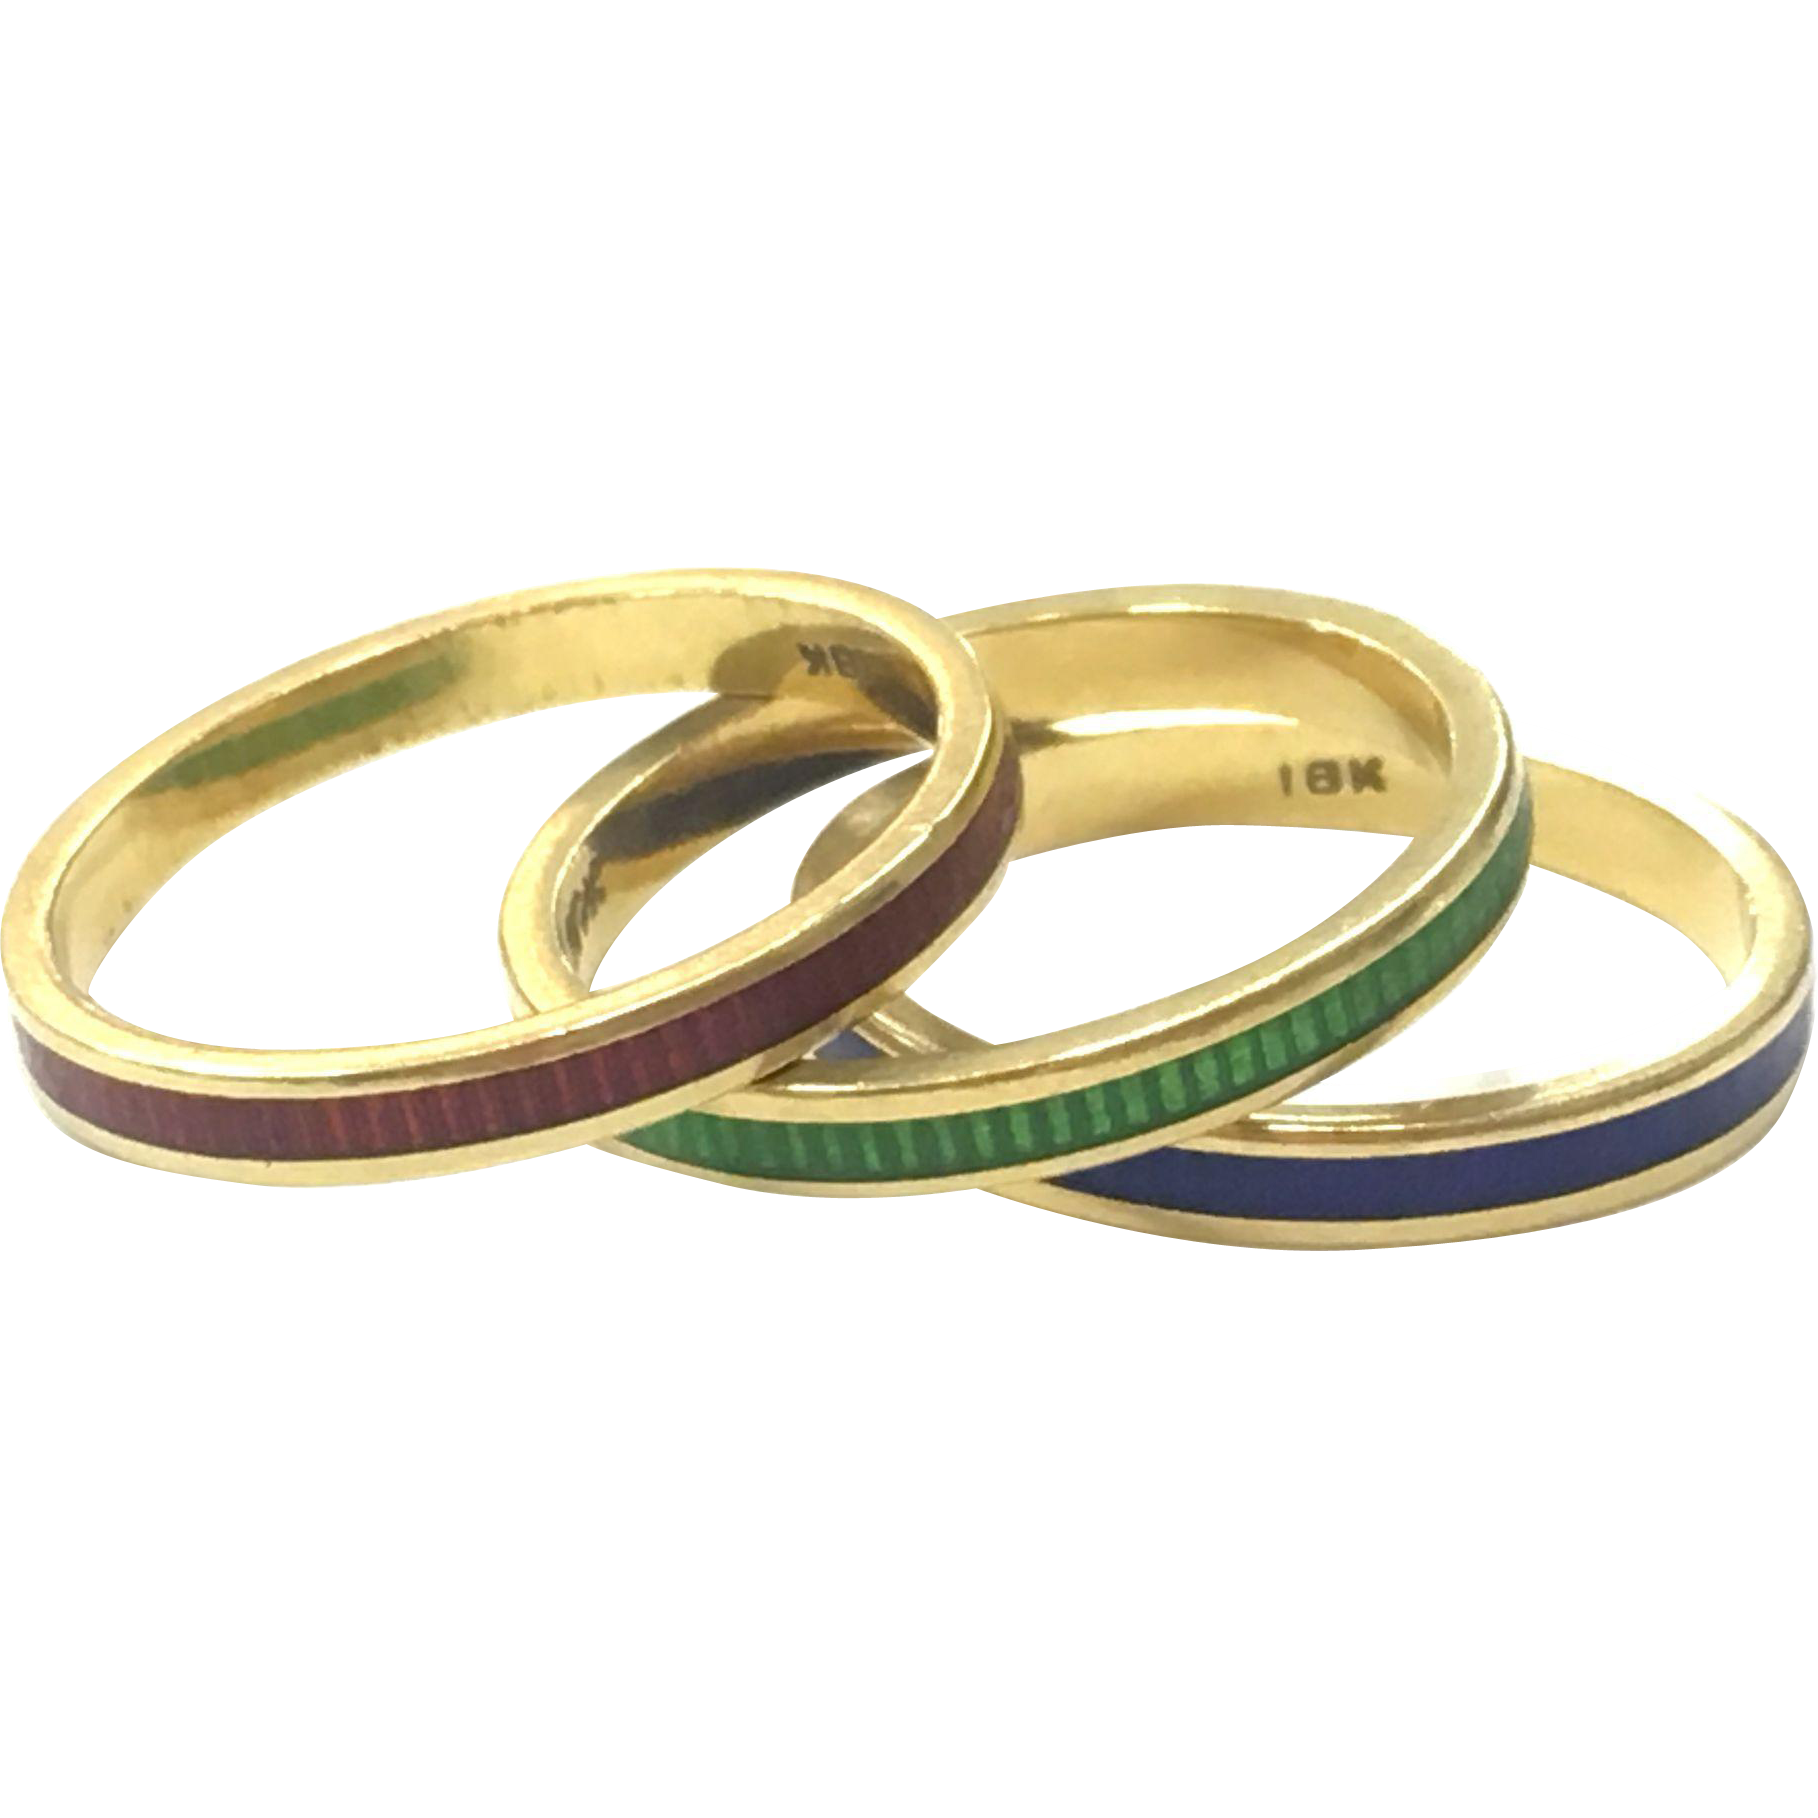 Vintage set of three 18K Yellow Gold Stacking Rings with Red, Green and Blue Enamel